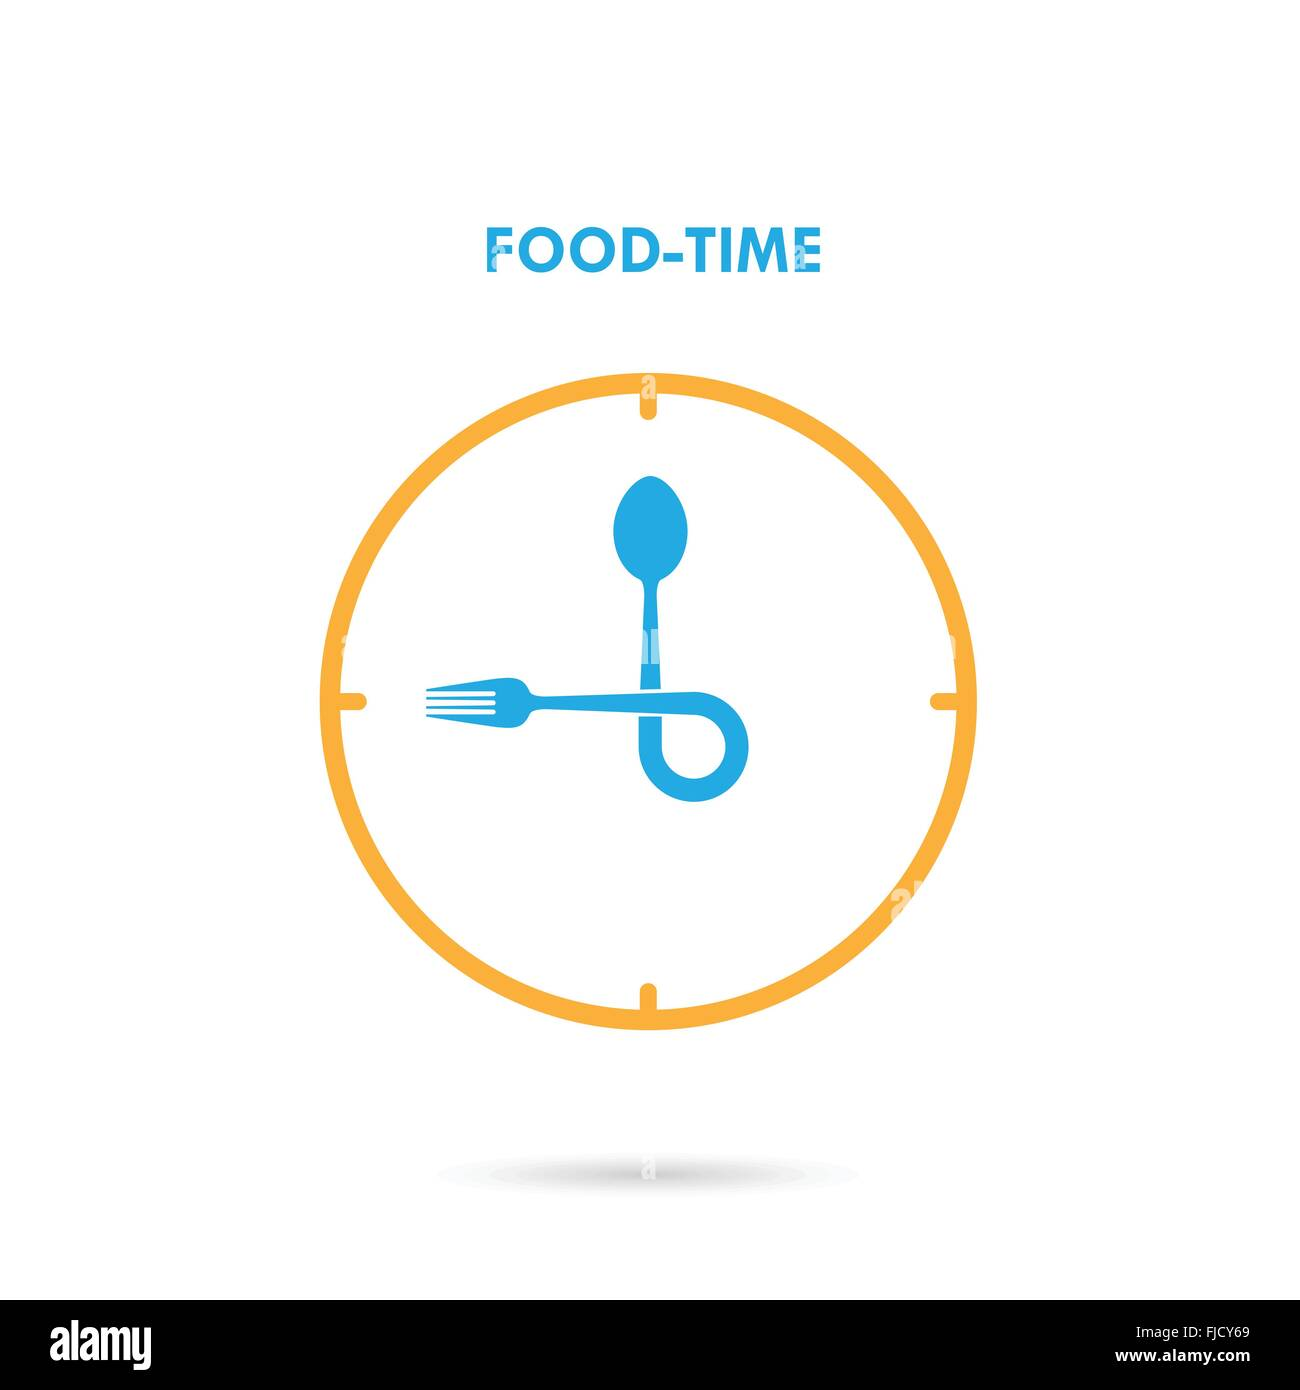 Food TimeLunch Time IconEating ConceptFork And Spoon SignCan Be Used For Layout Banner Web Design